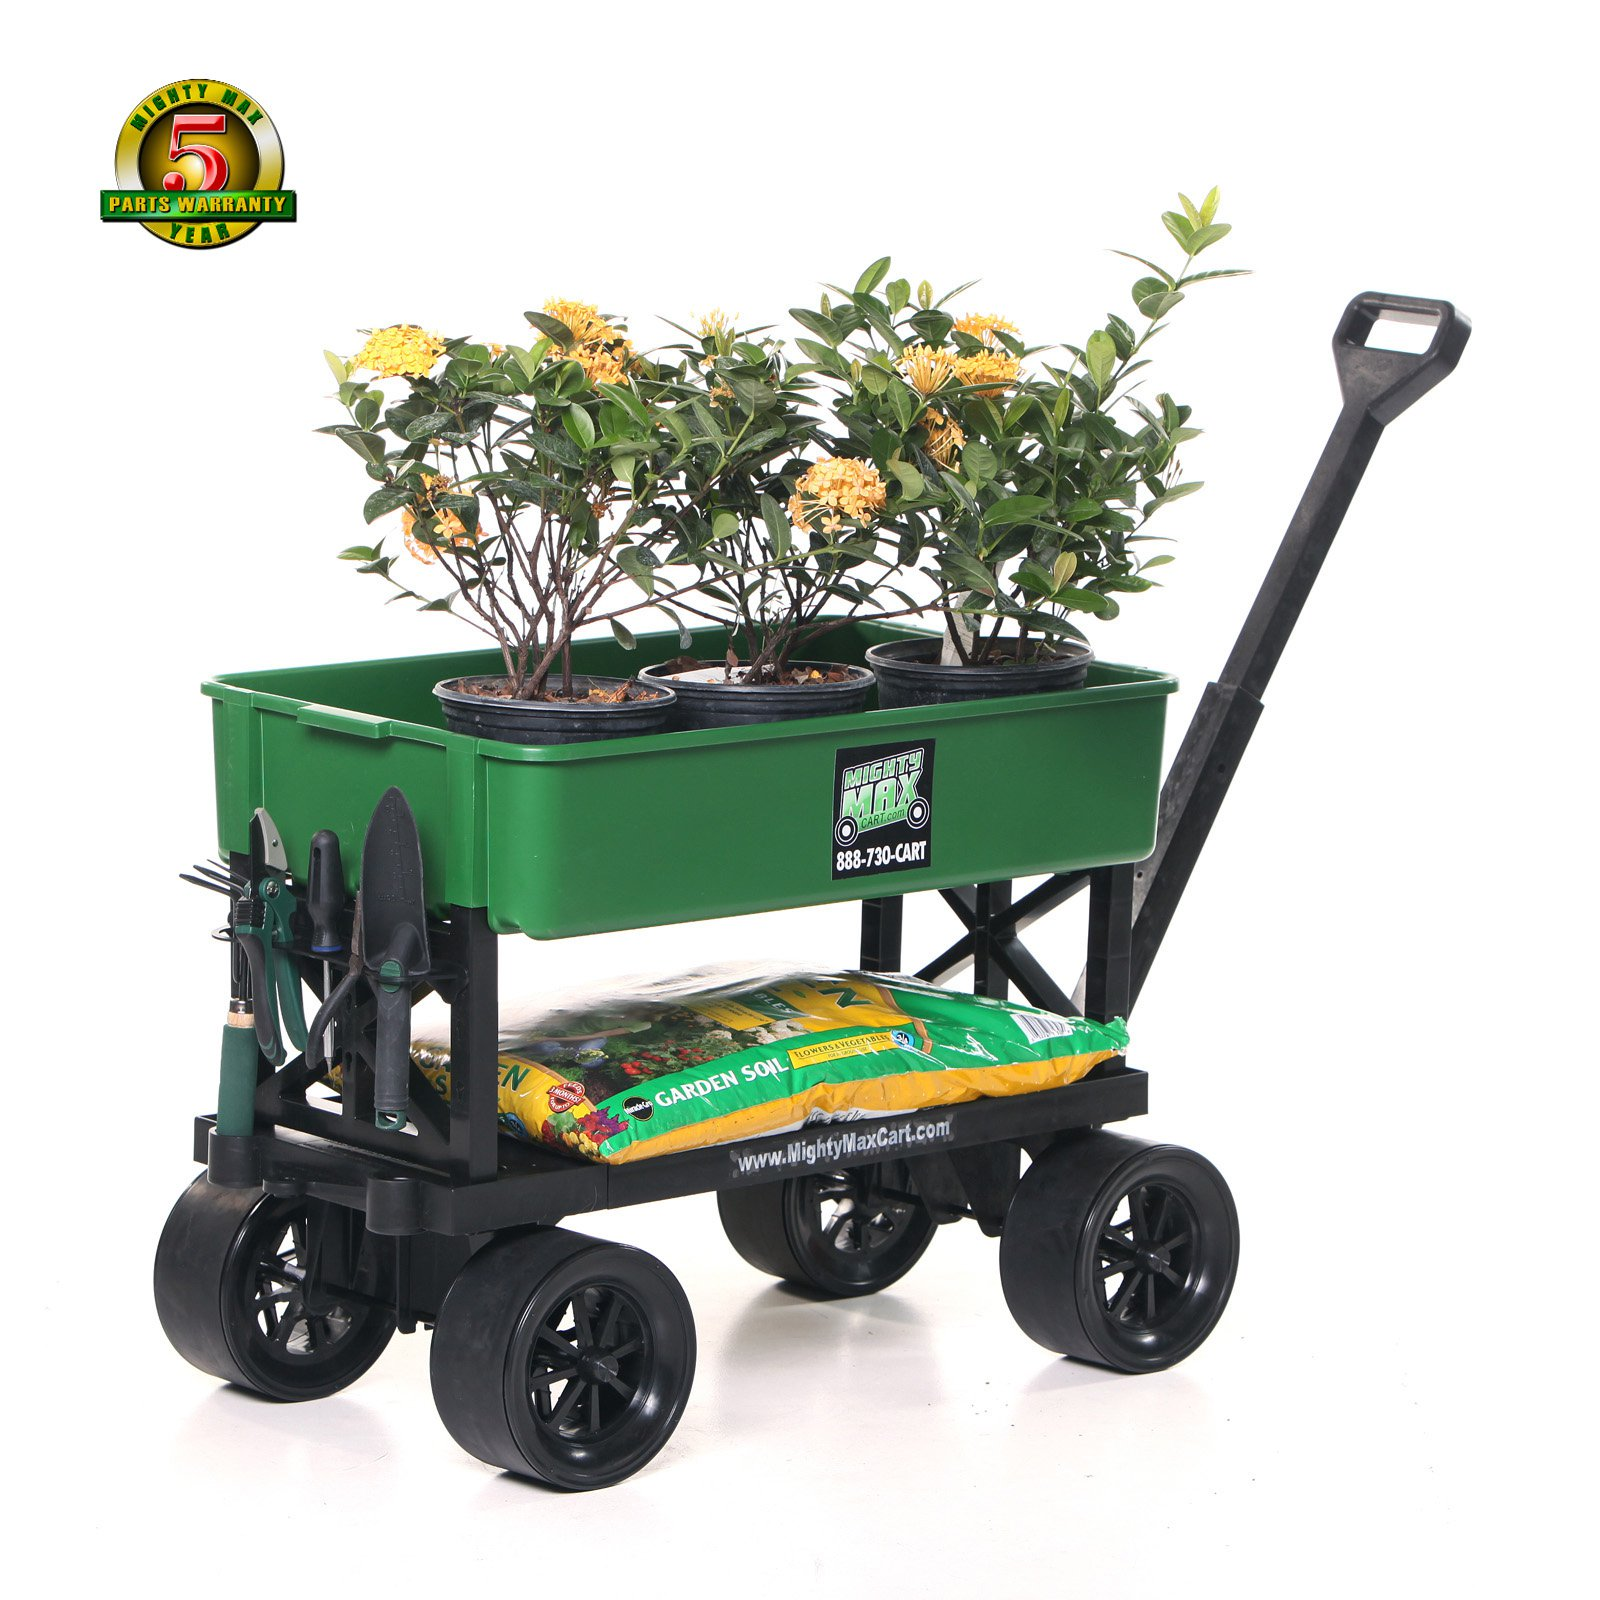 Garden carts major uses